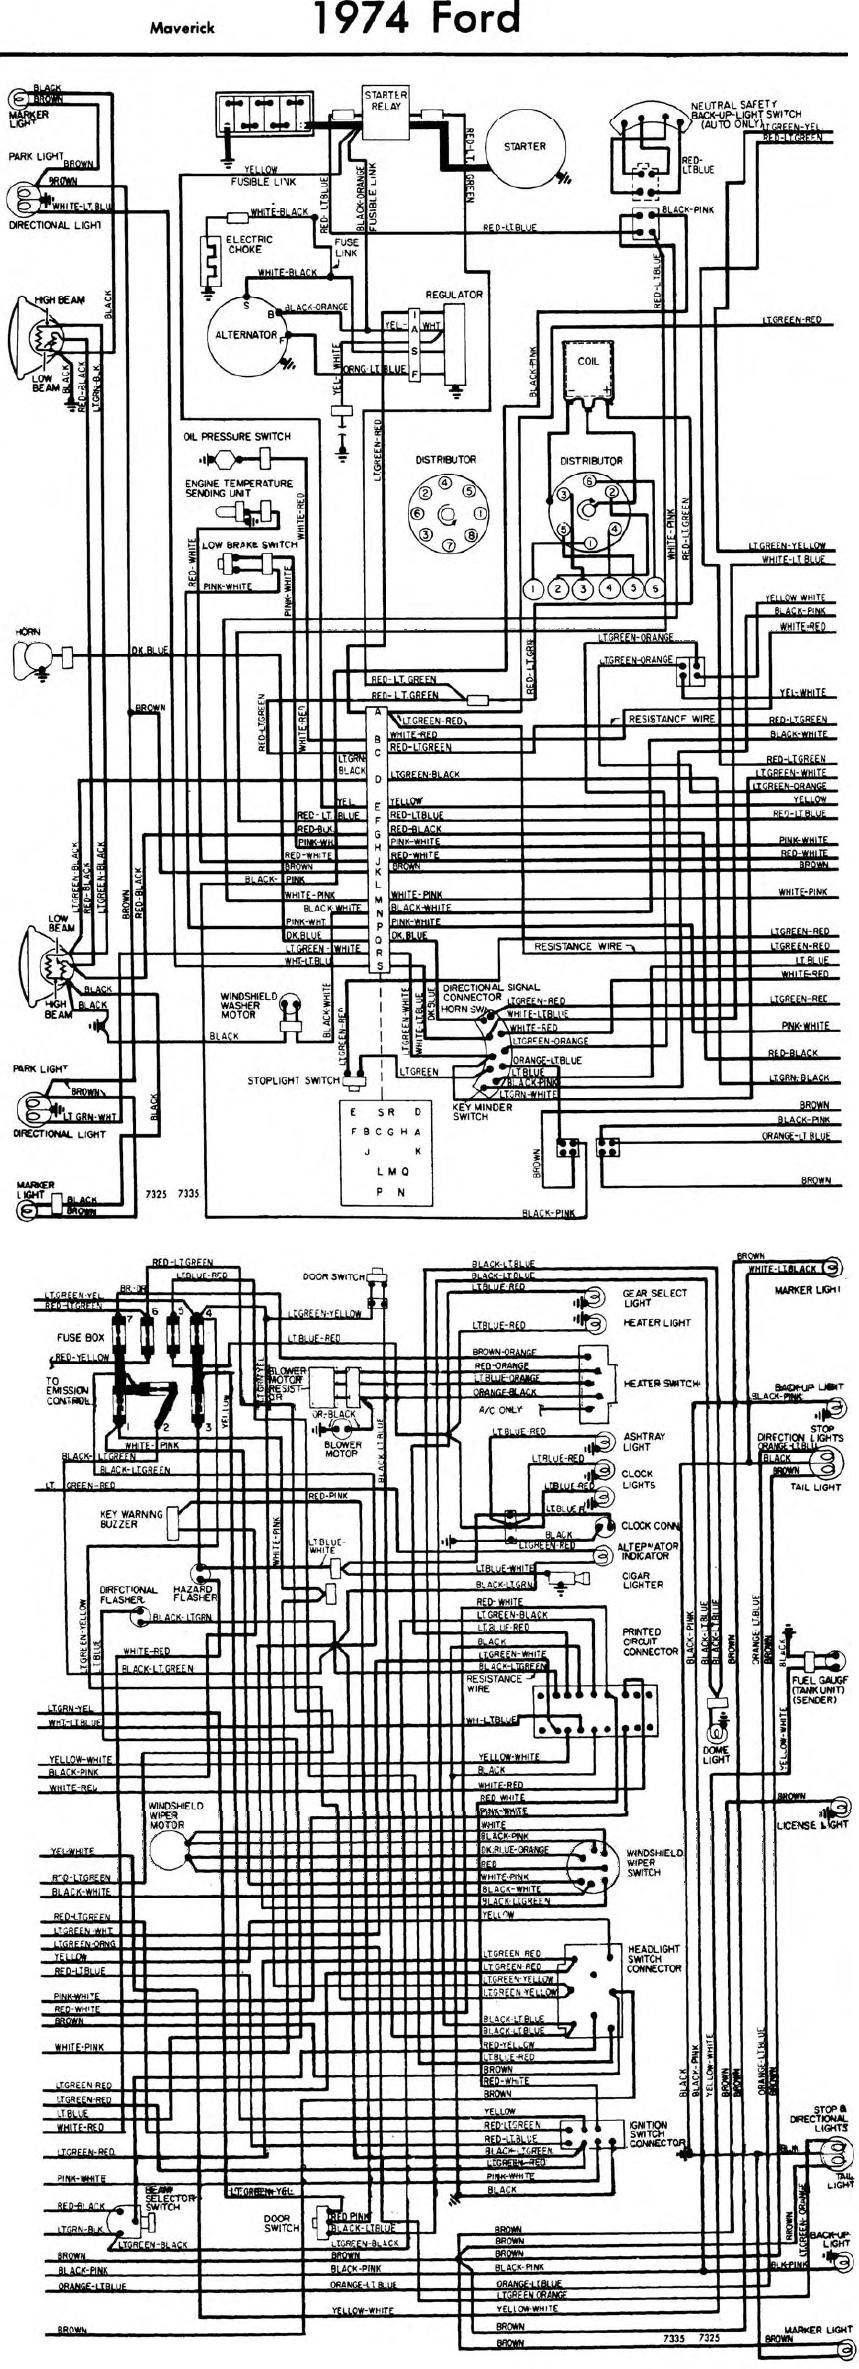 small resolution of 1977 ford maverick wiring diagram wiring diagram third levelford maverick starter wiring wiring diagram third level